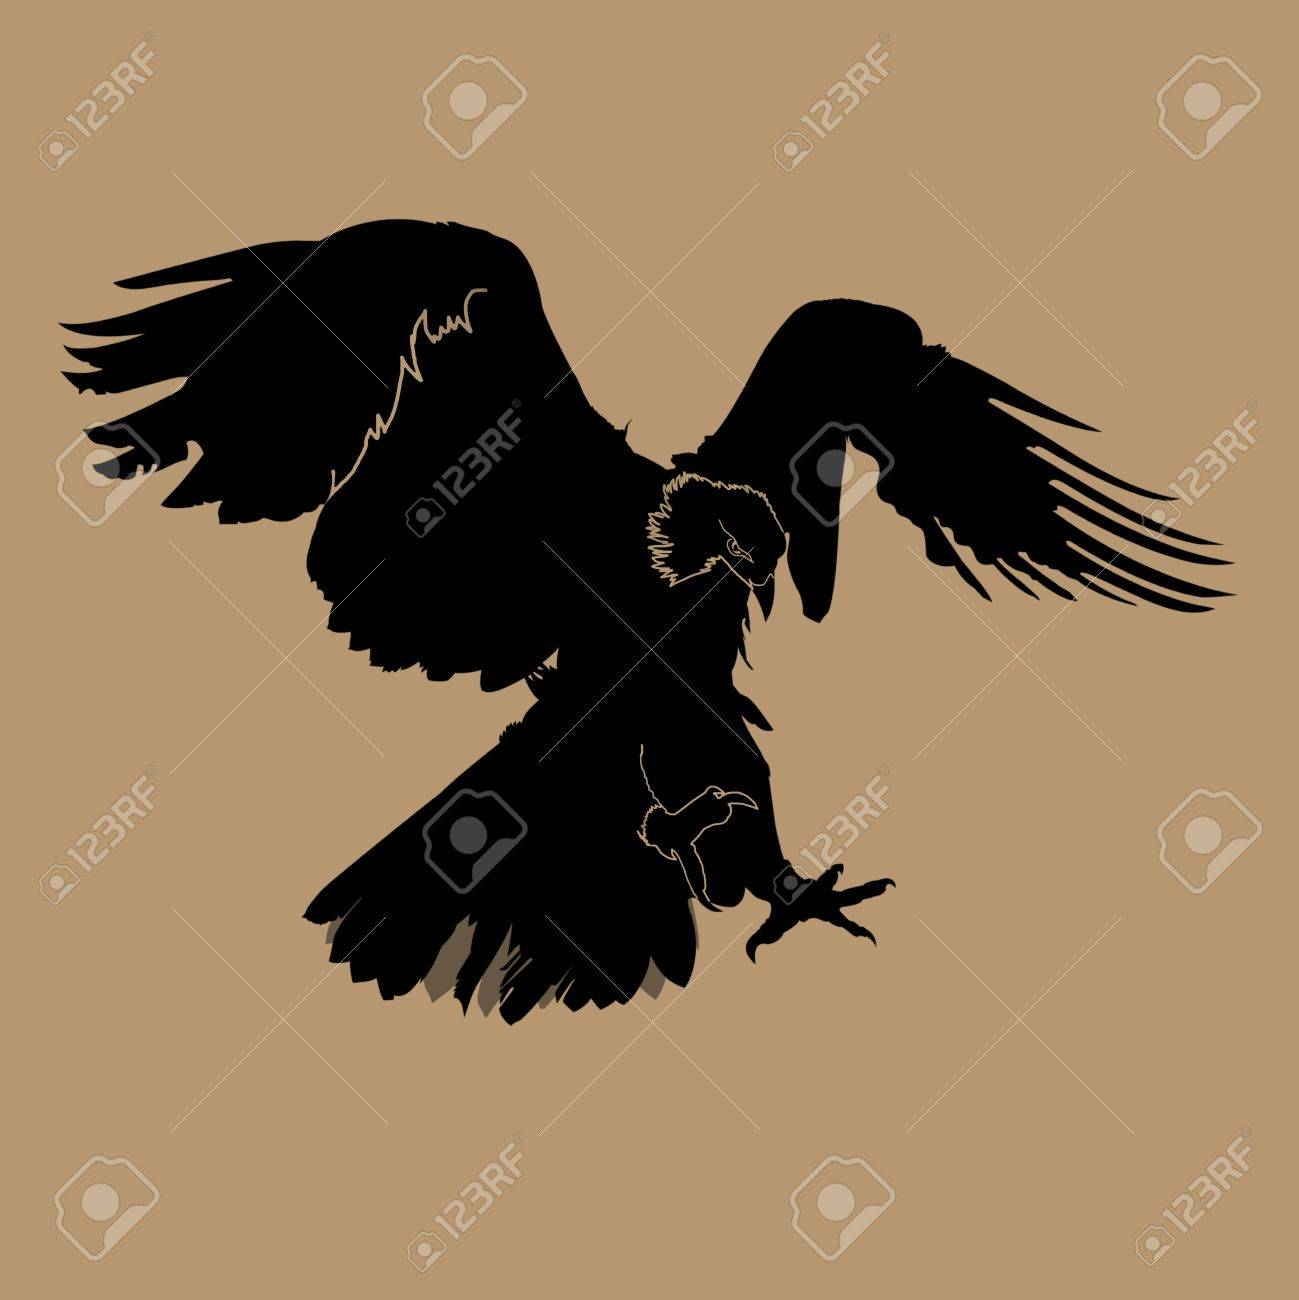 eagle silhouette Stock Photo - 11820393